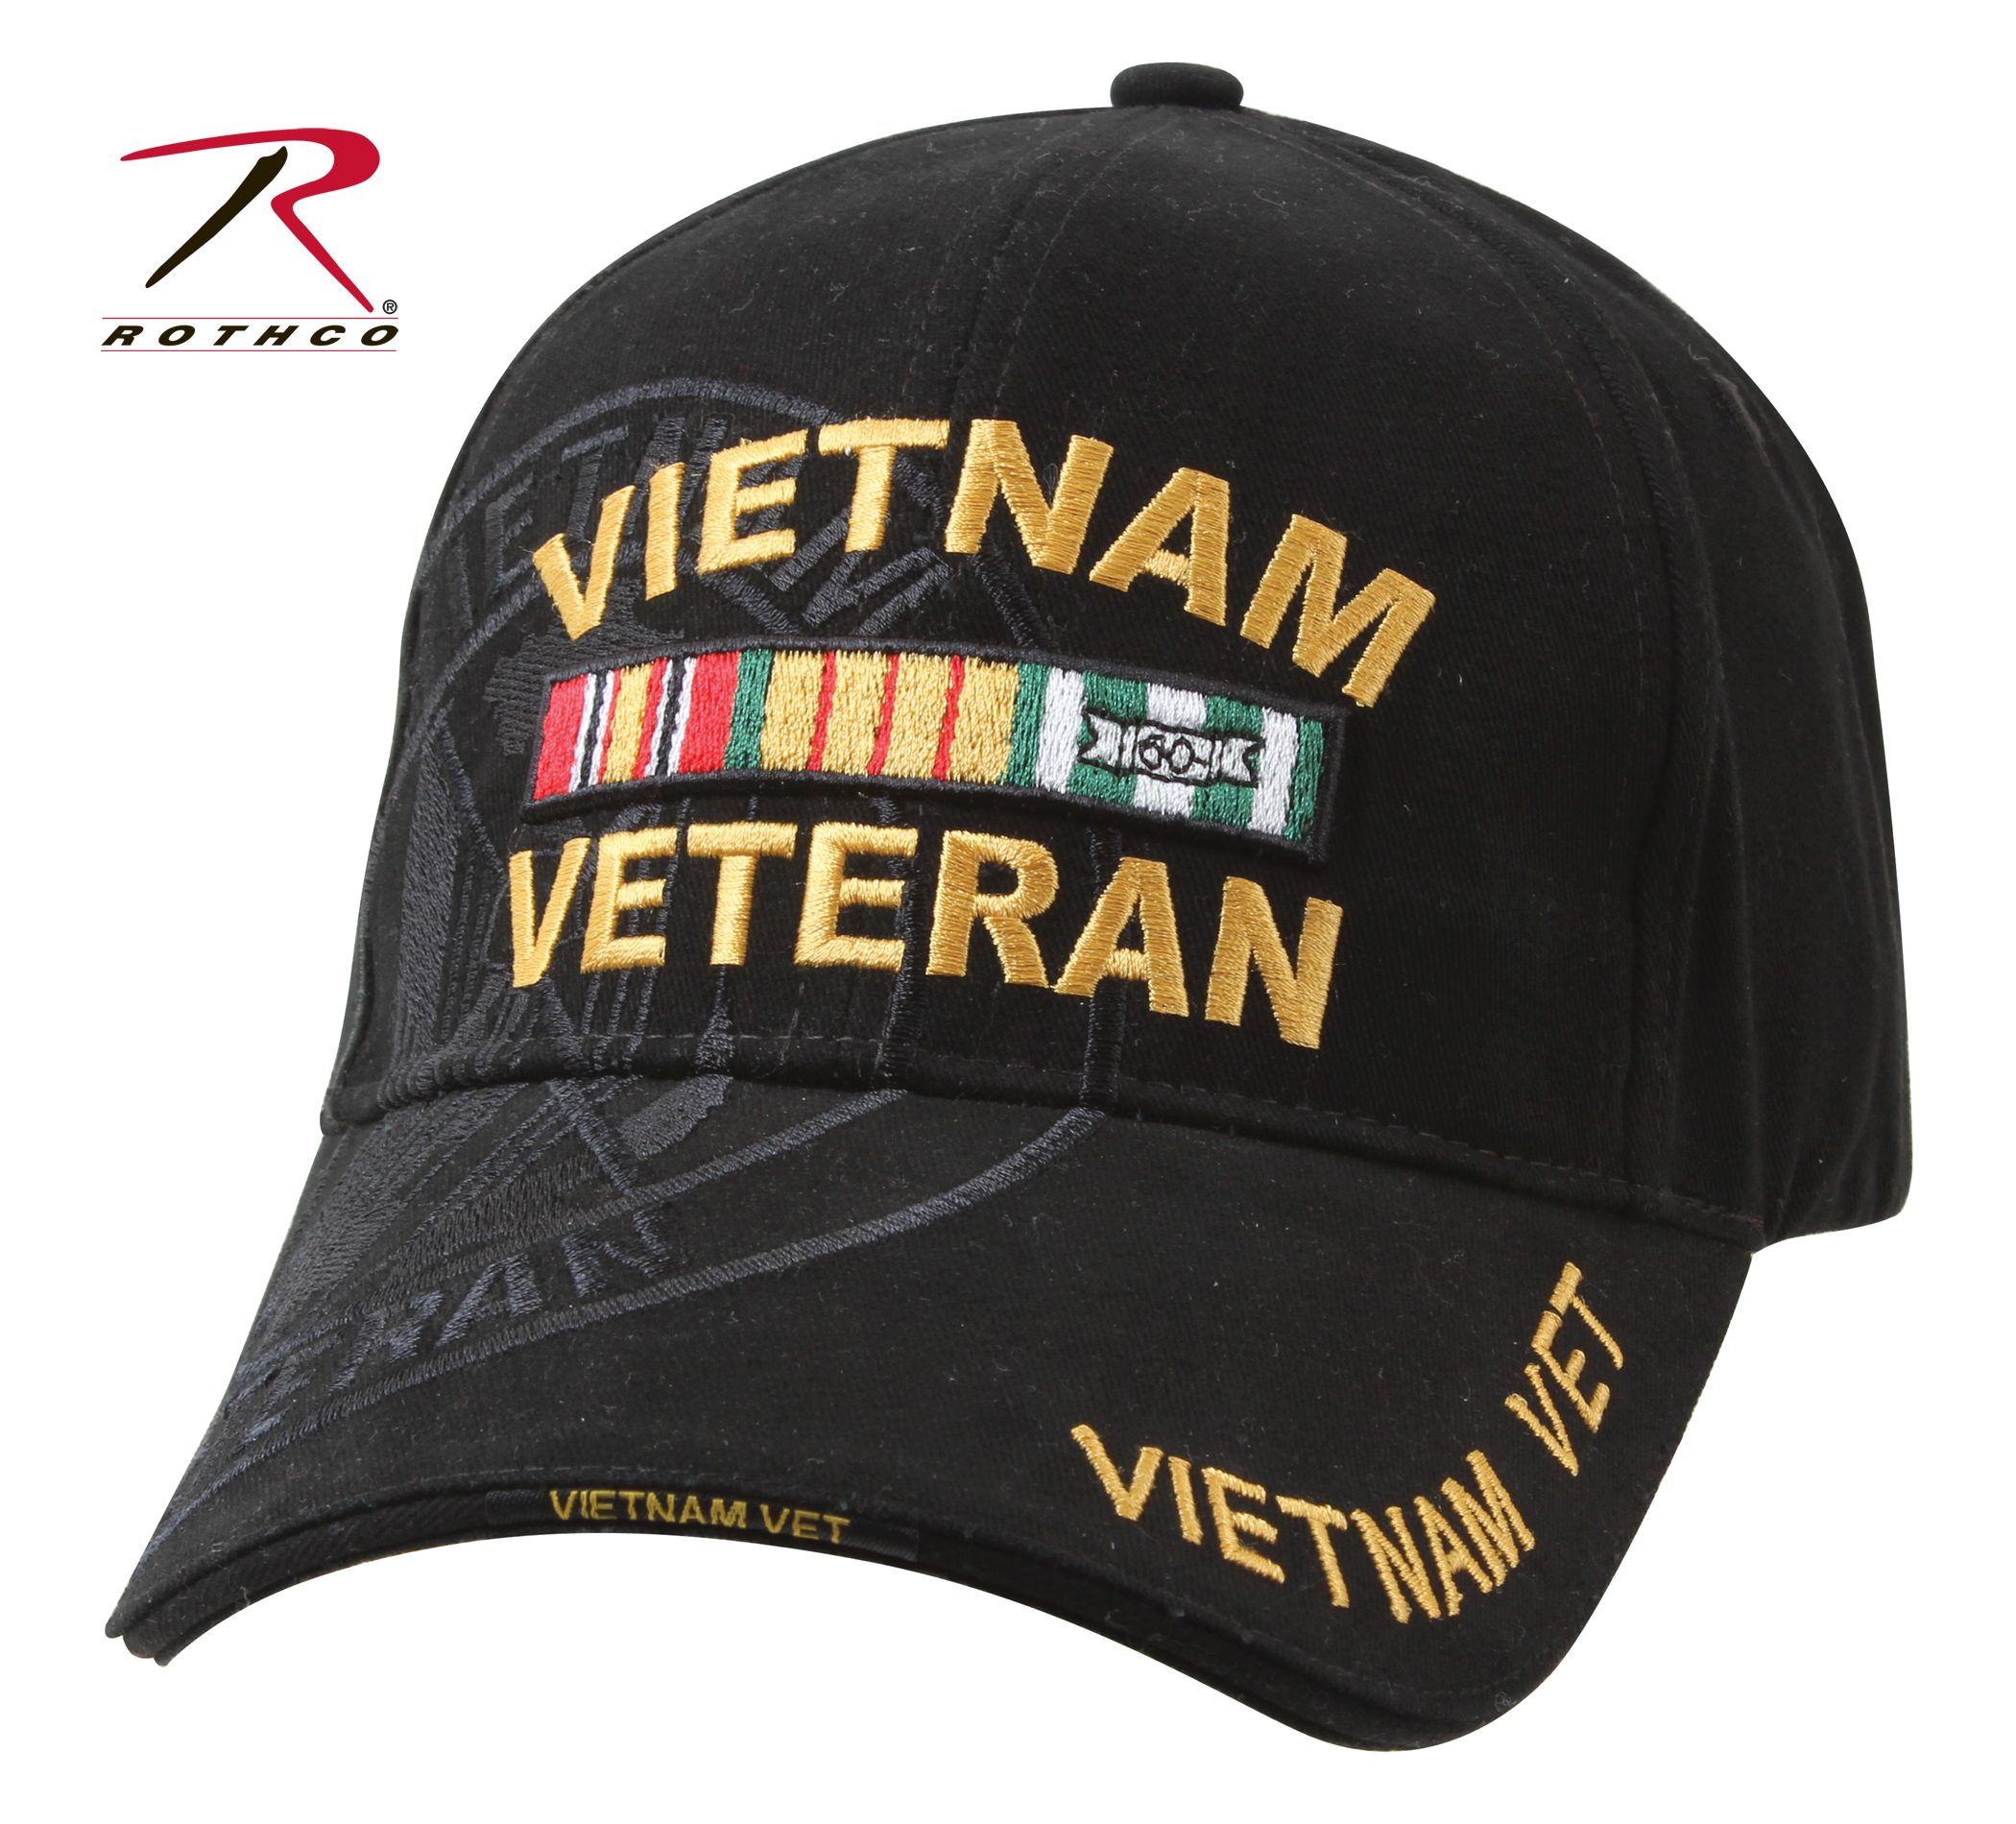 US NAVY VETERAN CAP COVER HAT SHADOW STYLE EMBROIDERED